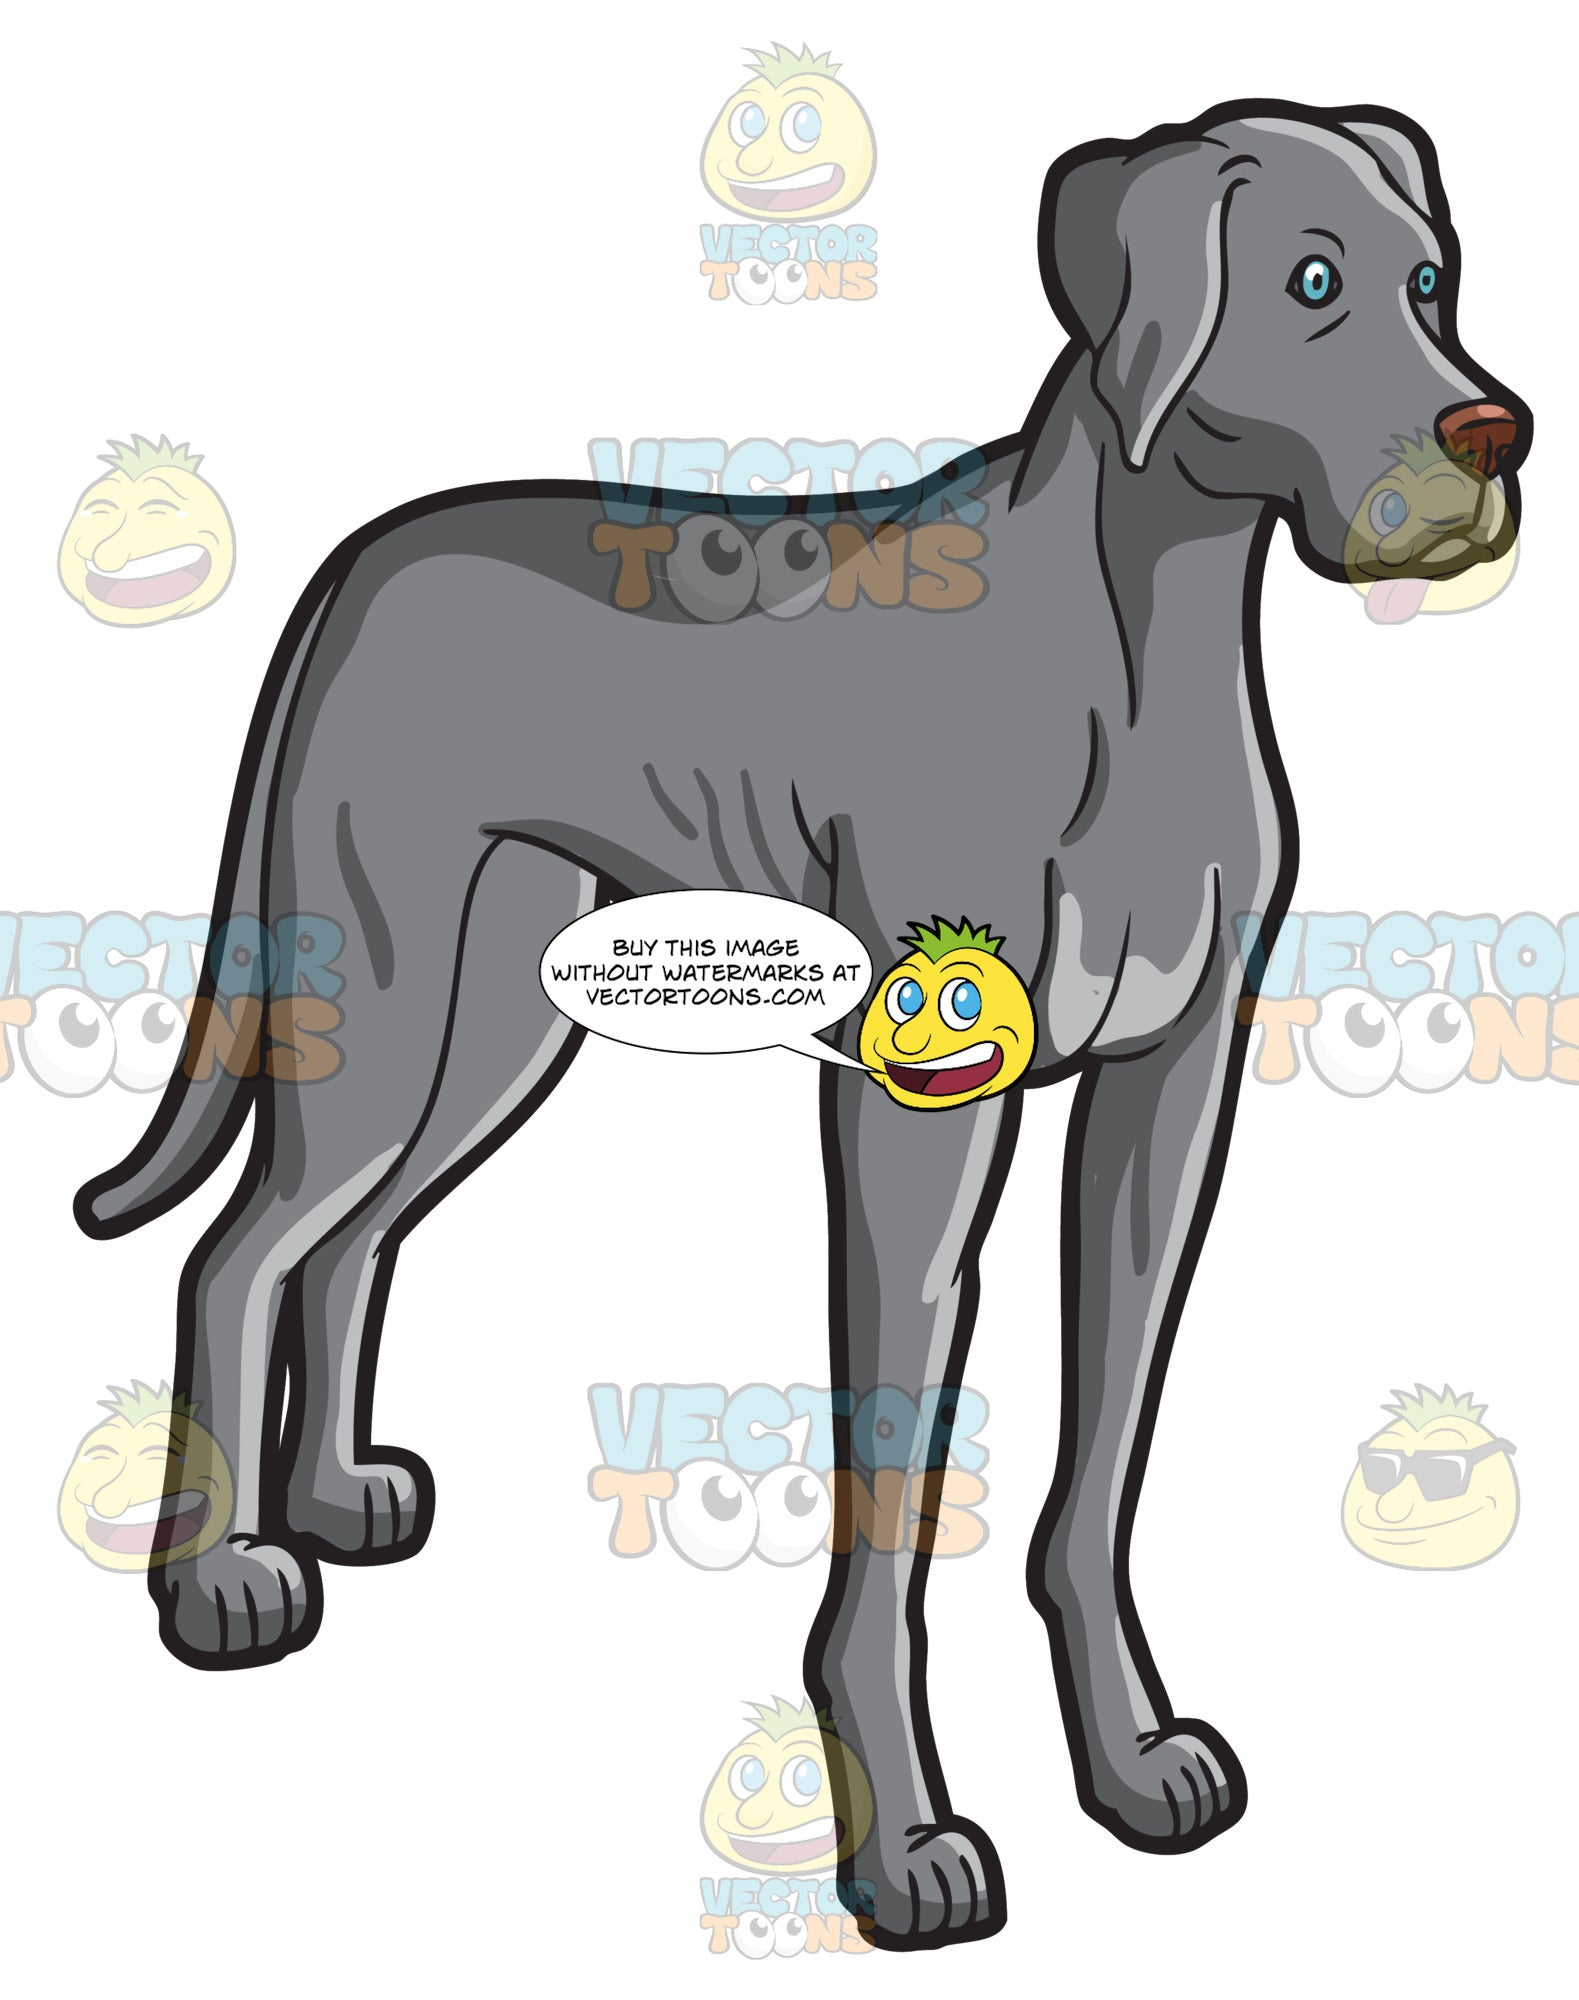 A Tall Adult Weimaraner Dog